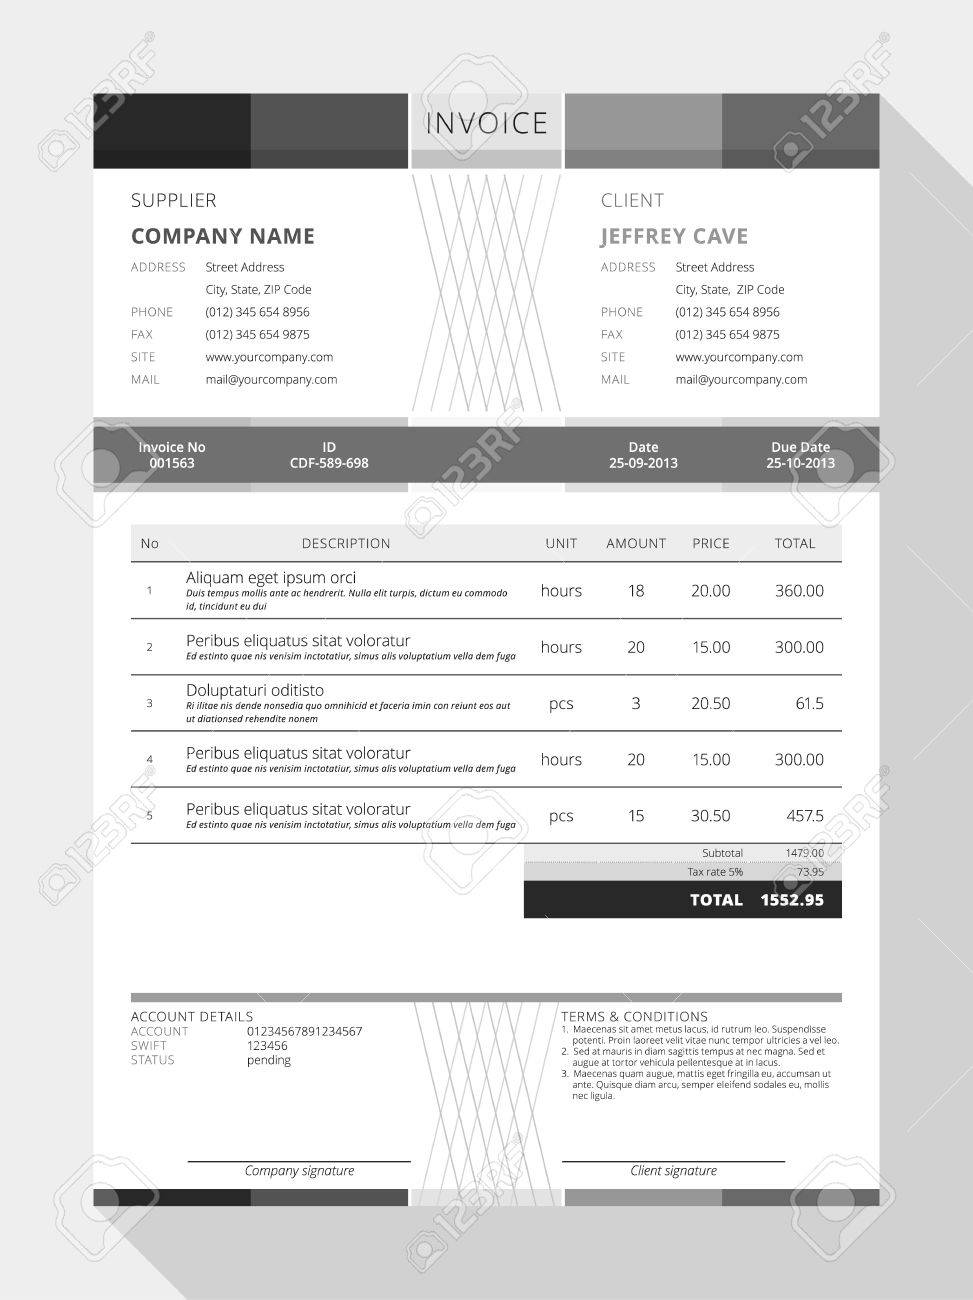 Modaoxus  Fascinating Design An Invoice  Professional Graphic Design Invoice  With Handsome Vector Customizable Invoice Form Template Design Vector   Design An Invoice With Cool The Invoice Price Of A Bond Is The Also Billing Vs Invoicing In Addition Invoice Template Xls And Sample Invoice Templates As Well As Einvoicing Software Additionally Sample Invoice For Services Rendered From Happytomco With Modaoxus  Handsome Design An Invoice  Professional Graphic Design Invoice  With Cool Vector Customizable Invoice Form Template Design Vector   Design An Invoice And Fascinating The Invoice Price Of A Bond Is The Also Billing Vs Invoicing In Addition Invoice Template Xls From Happytomco